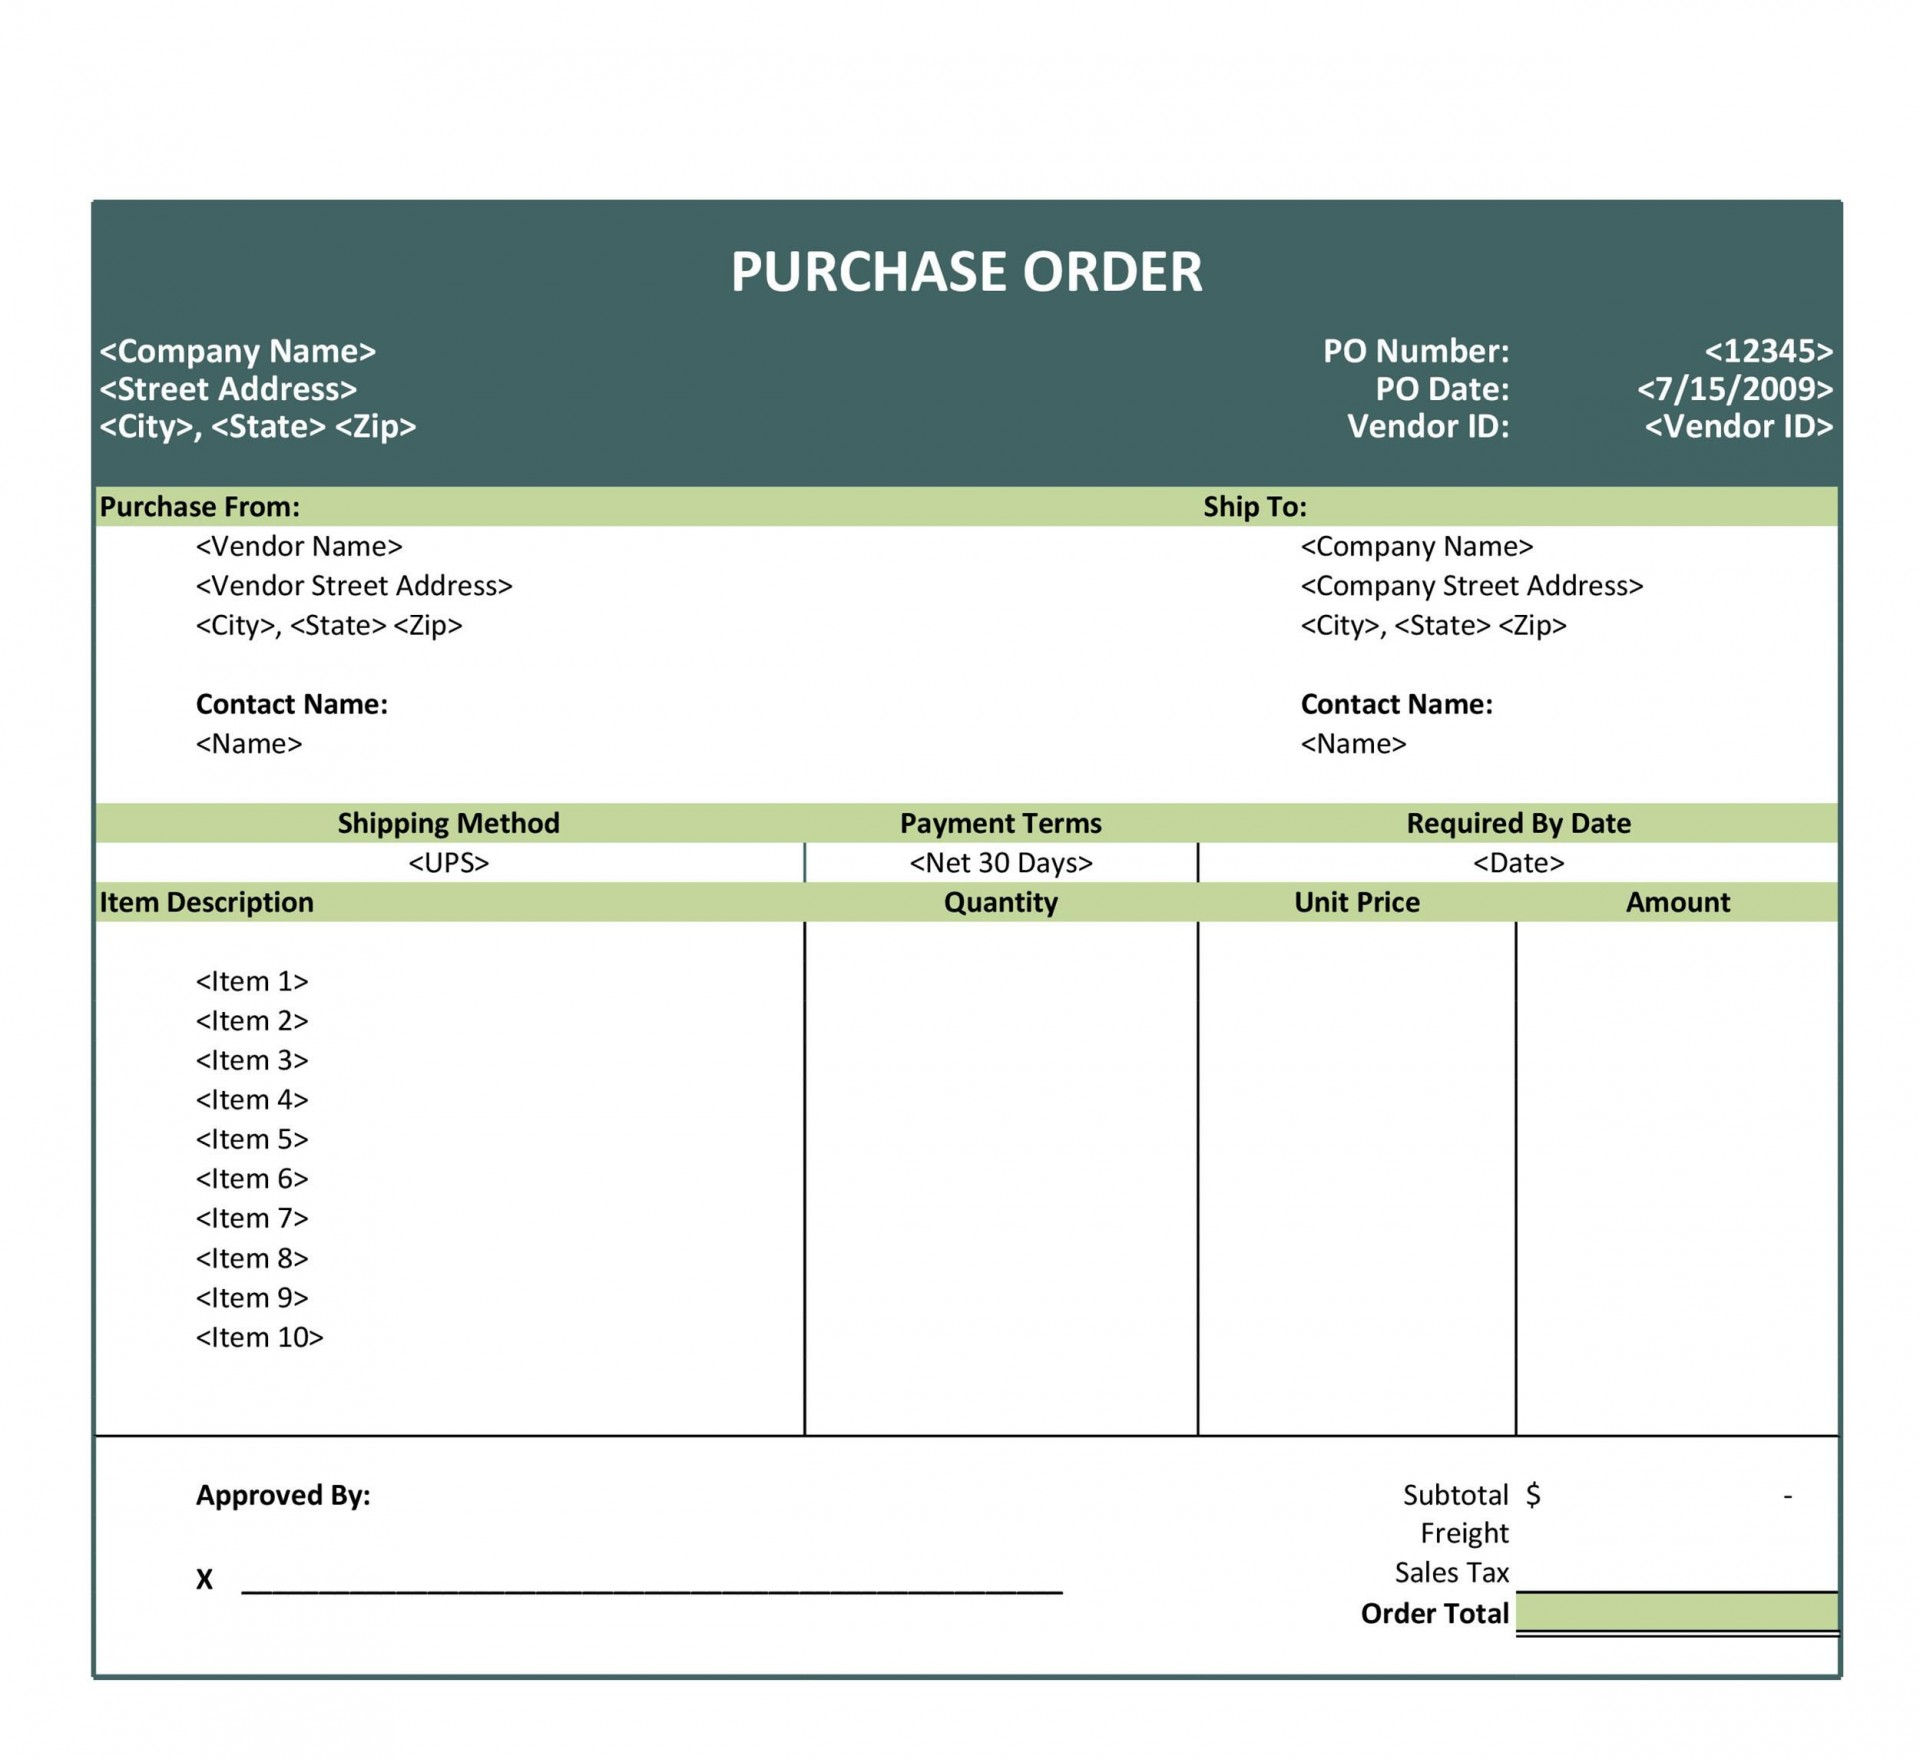 006 Rare Purchase Order Template Microsoft Word High Def  Form Download1920